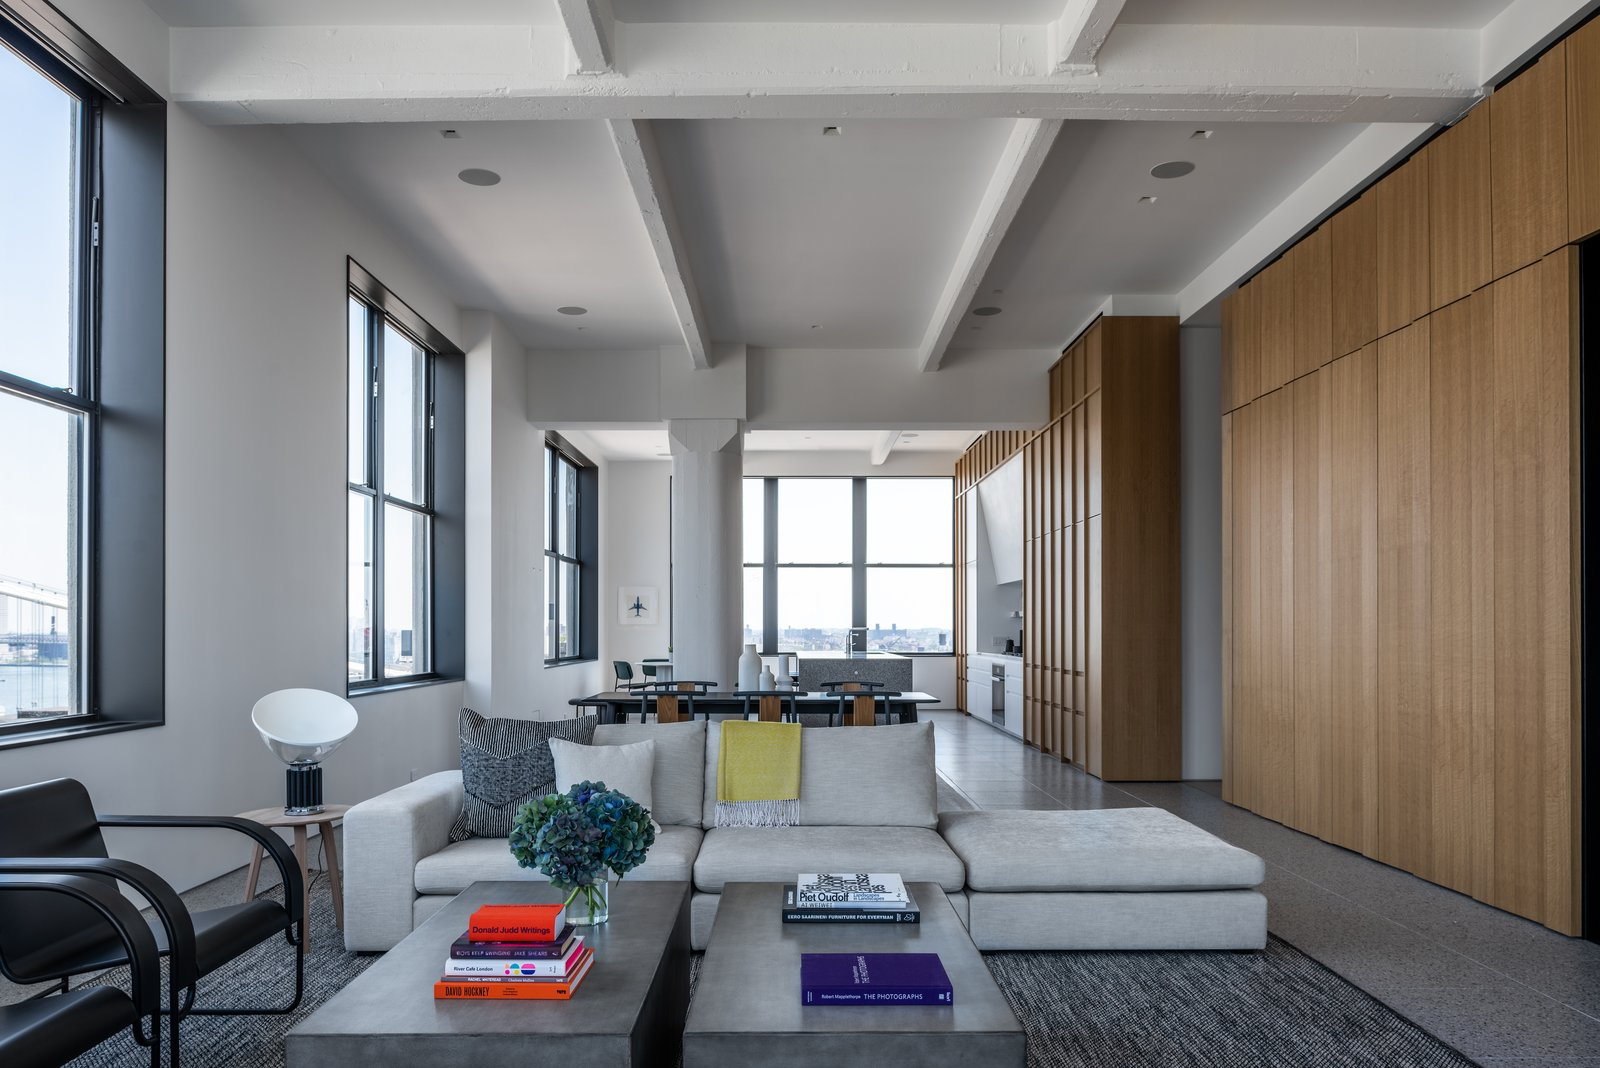 Four Corners Loft by Worrell Yeung  Photo 7 of 7 in New York Architects on How COVID-19 Is Urging Us to Rethink Home Design